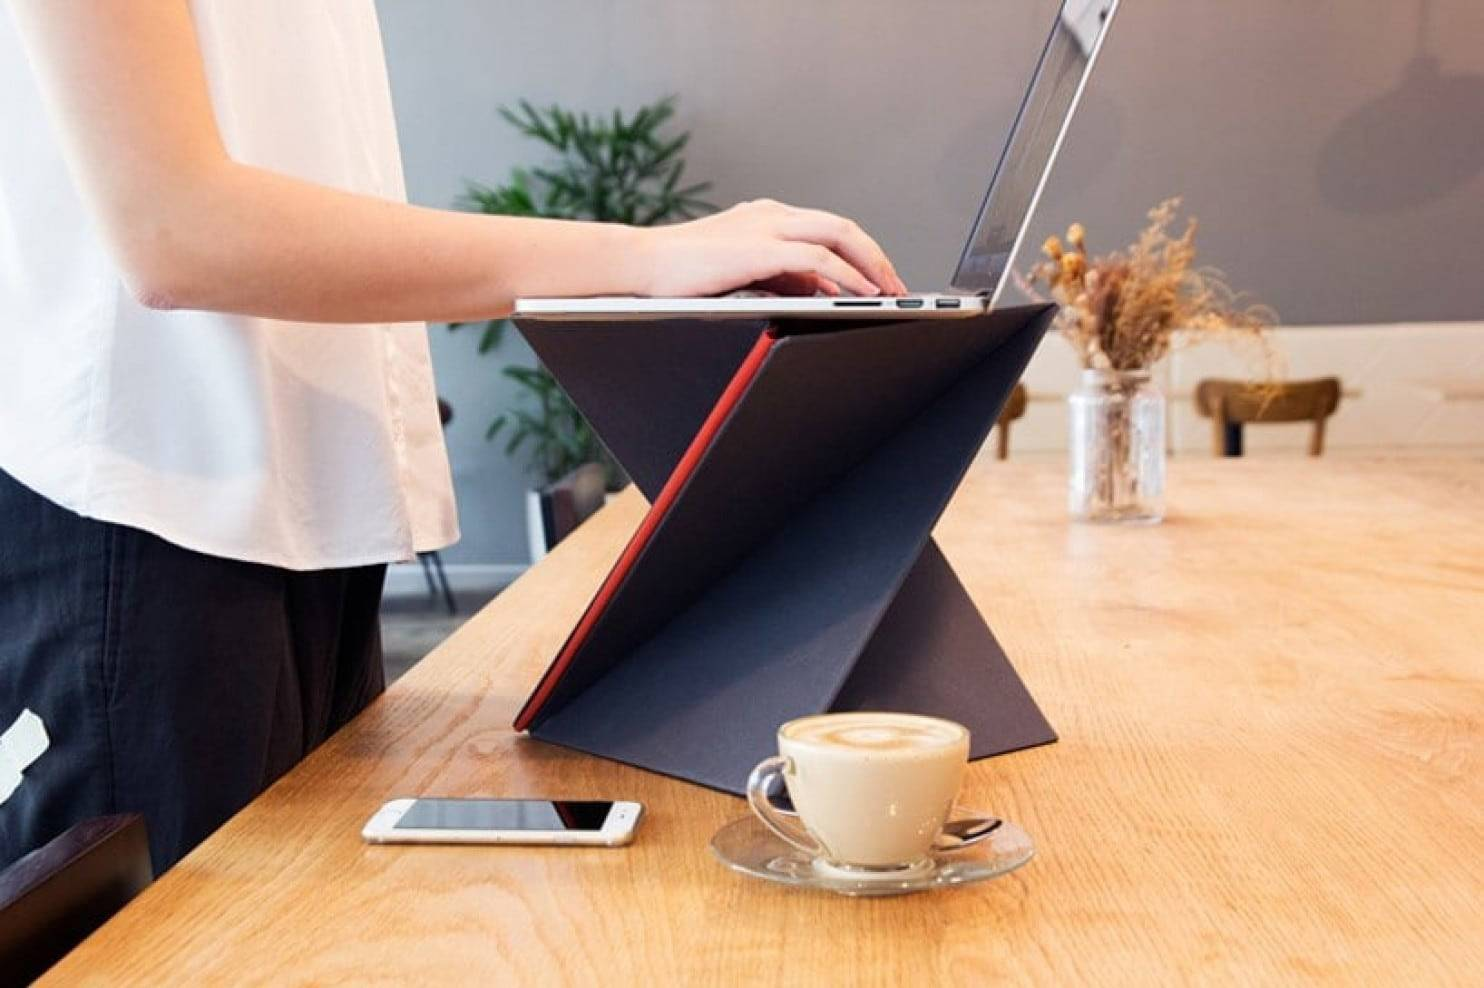 Because sitting all day isn't good for you, stand up and work with Levit8's attractive, portable computer stand.